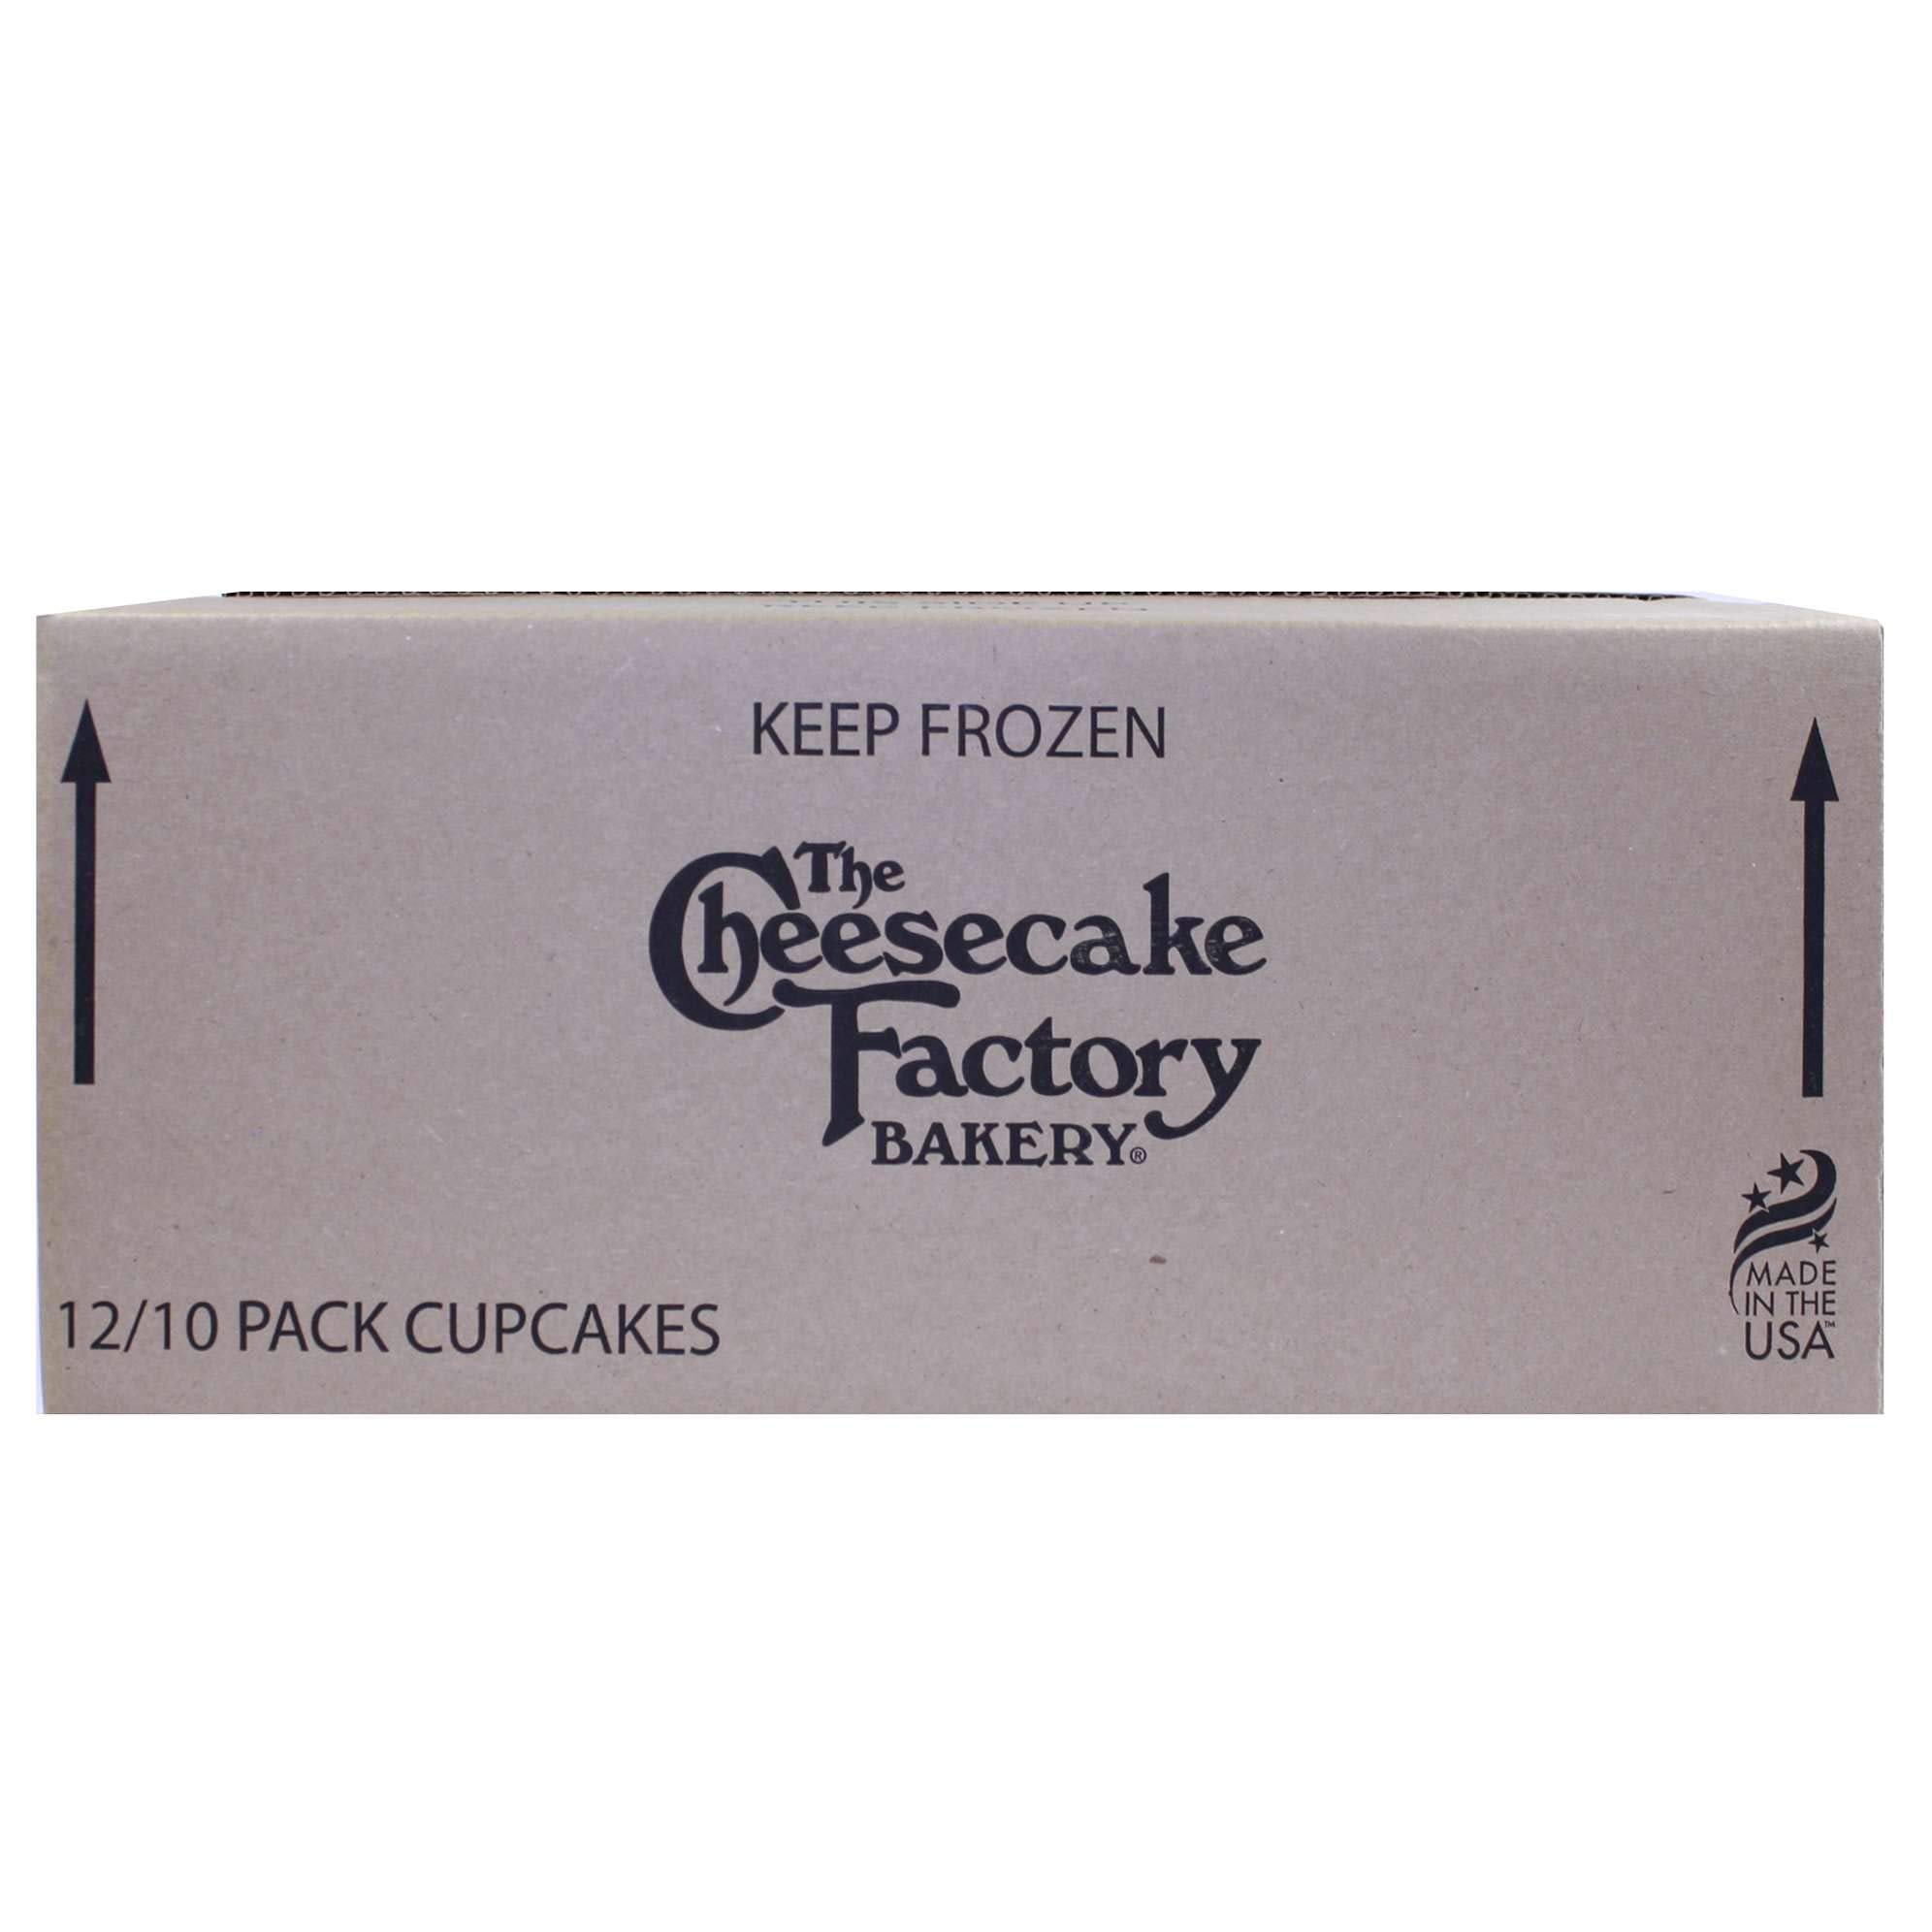 The Cheesecake Factory Mini Cupcake Combo (Vanilla Bean, Blackout, Red Velvet) 10 count (Pack of 12) by The Cheesecake Factory